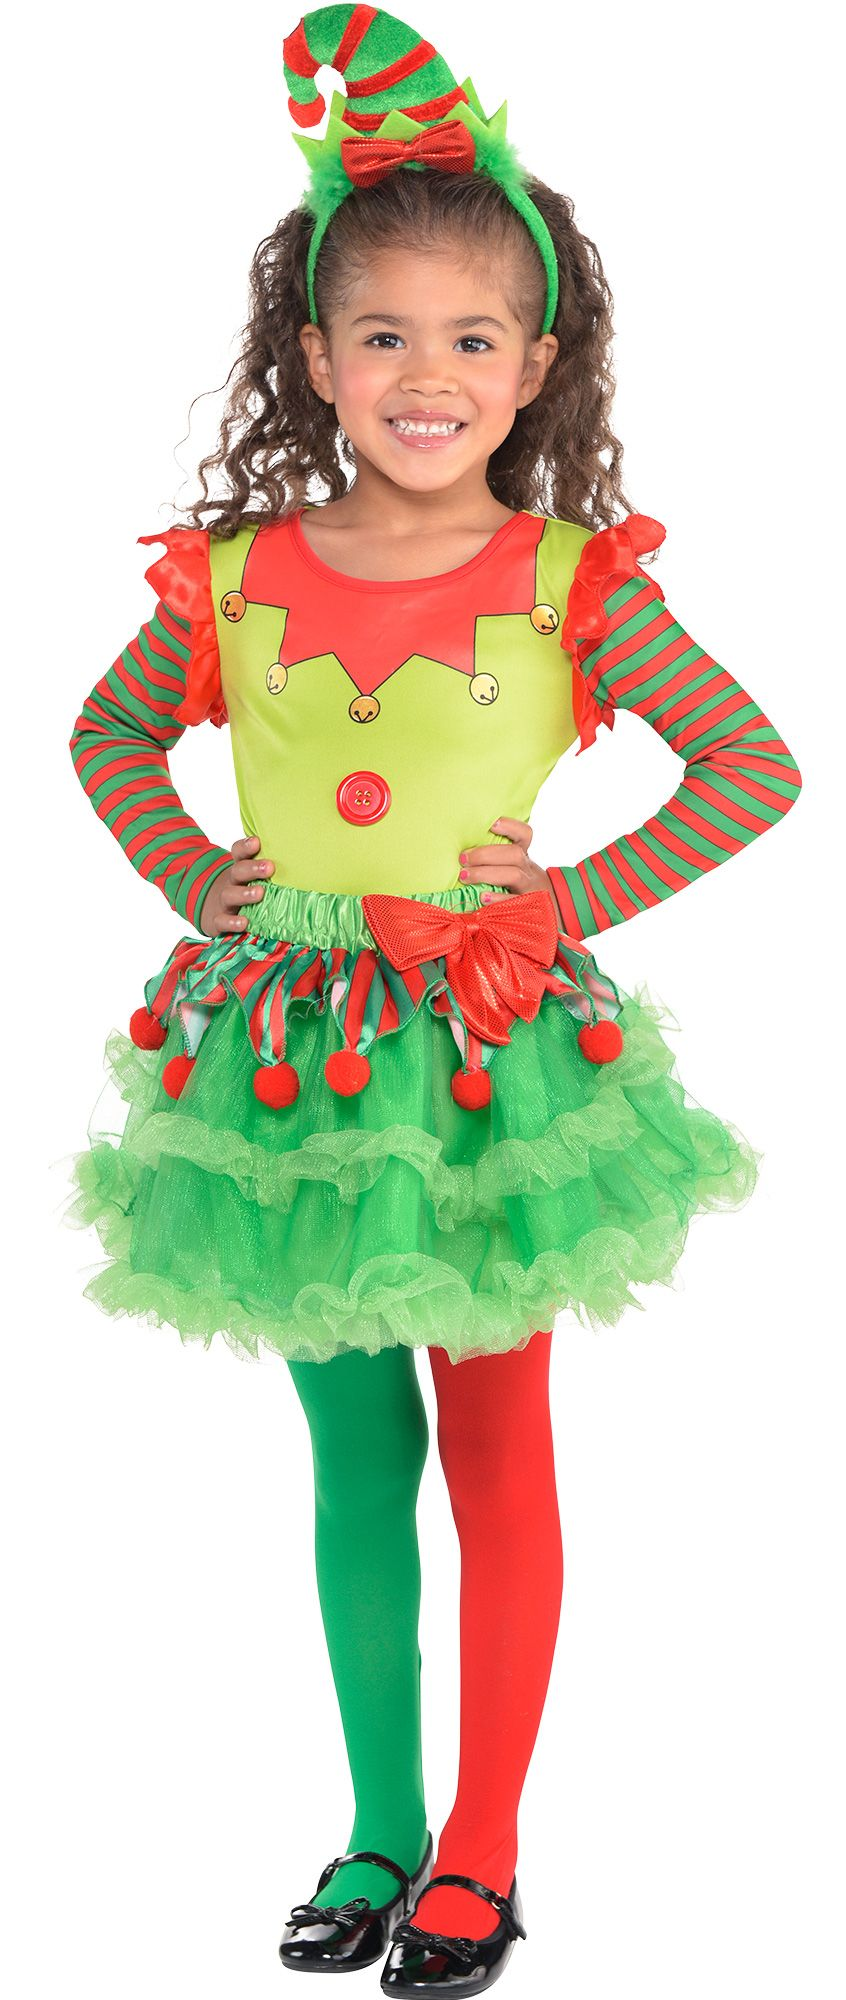 Girls' Elf Christmas Costume Accessories - Party City